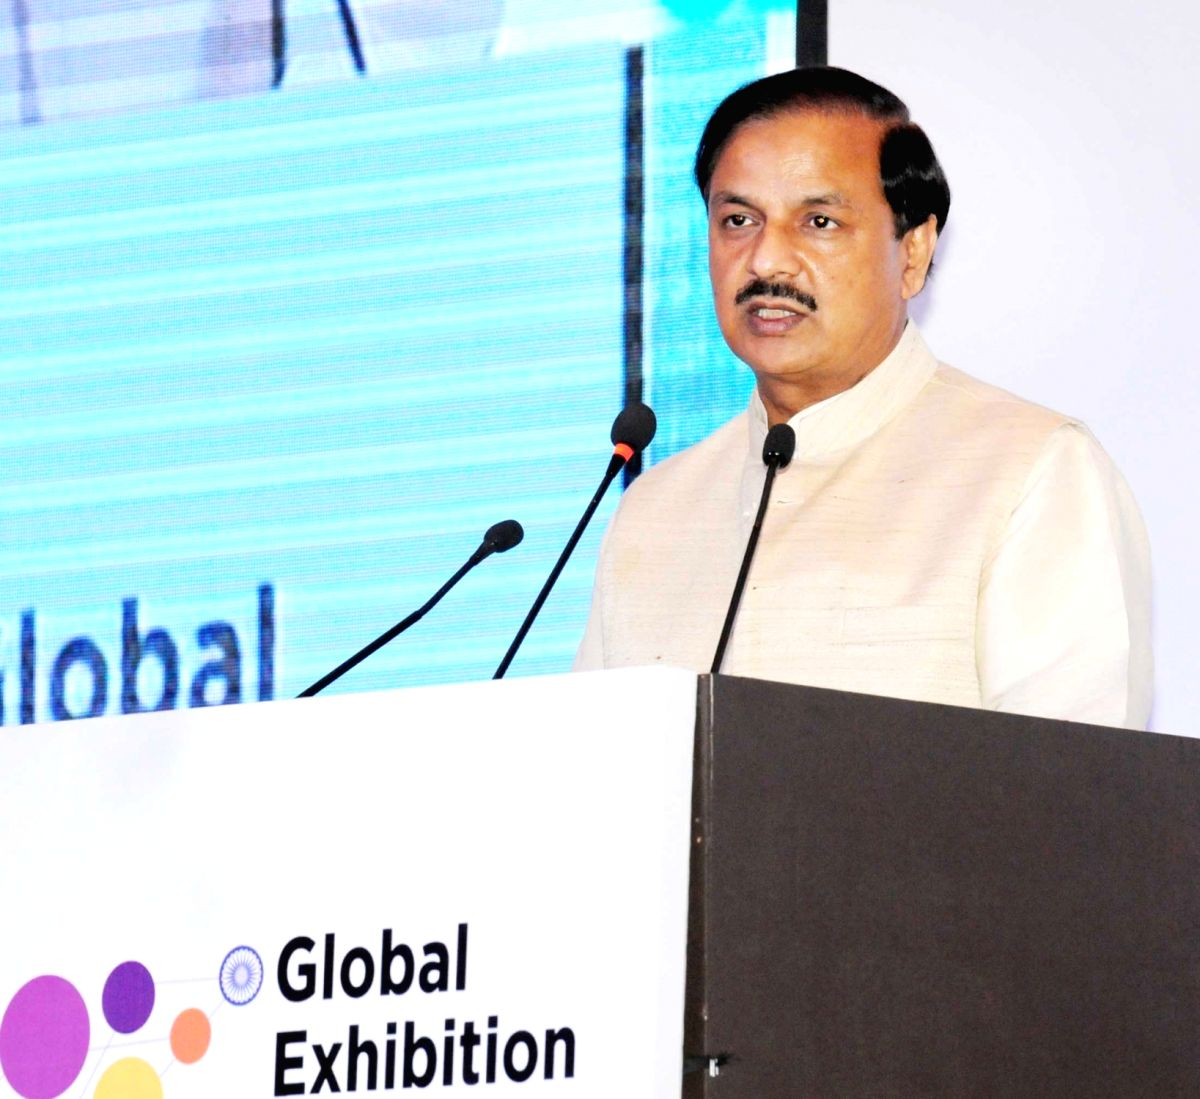 Union Minister of State for Culture (Independent Charge), Tourism (Independent Charge) and Civil Aviation, Dr. Mahesh Sharma addresses at the inauguration of the 2nd Edition of the Global ...